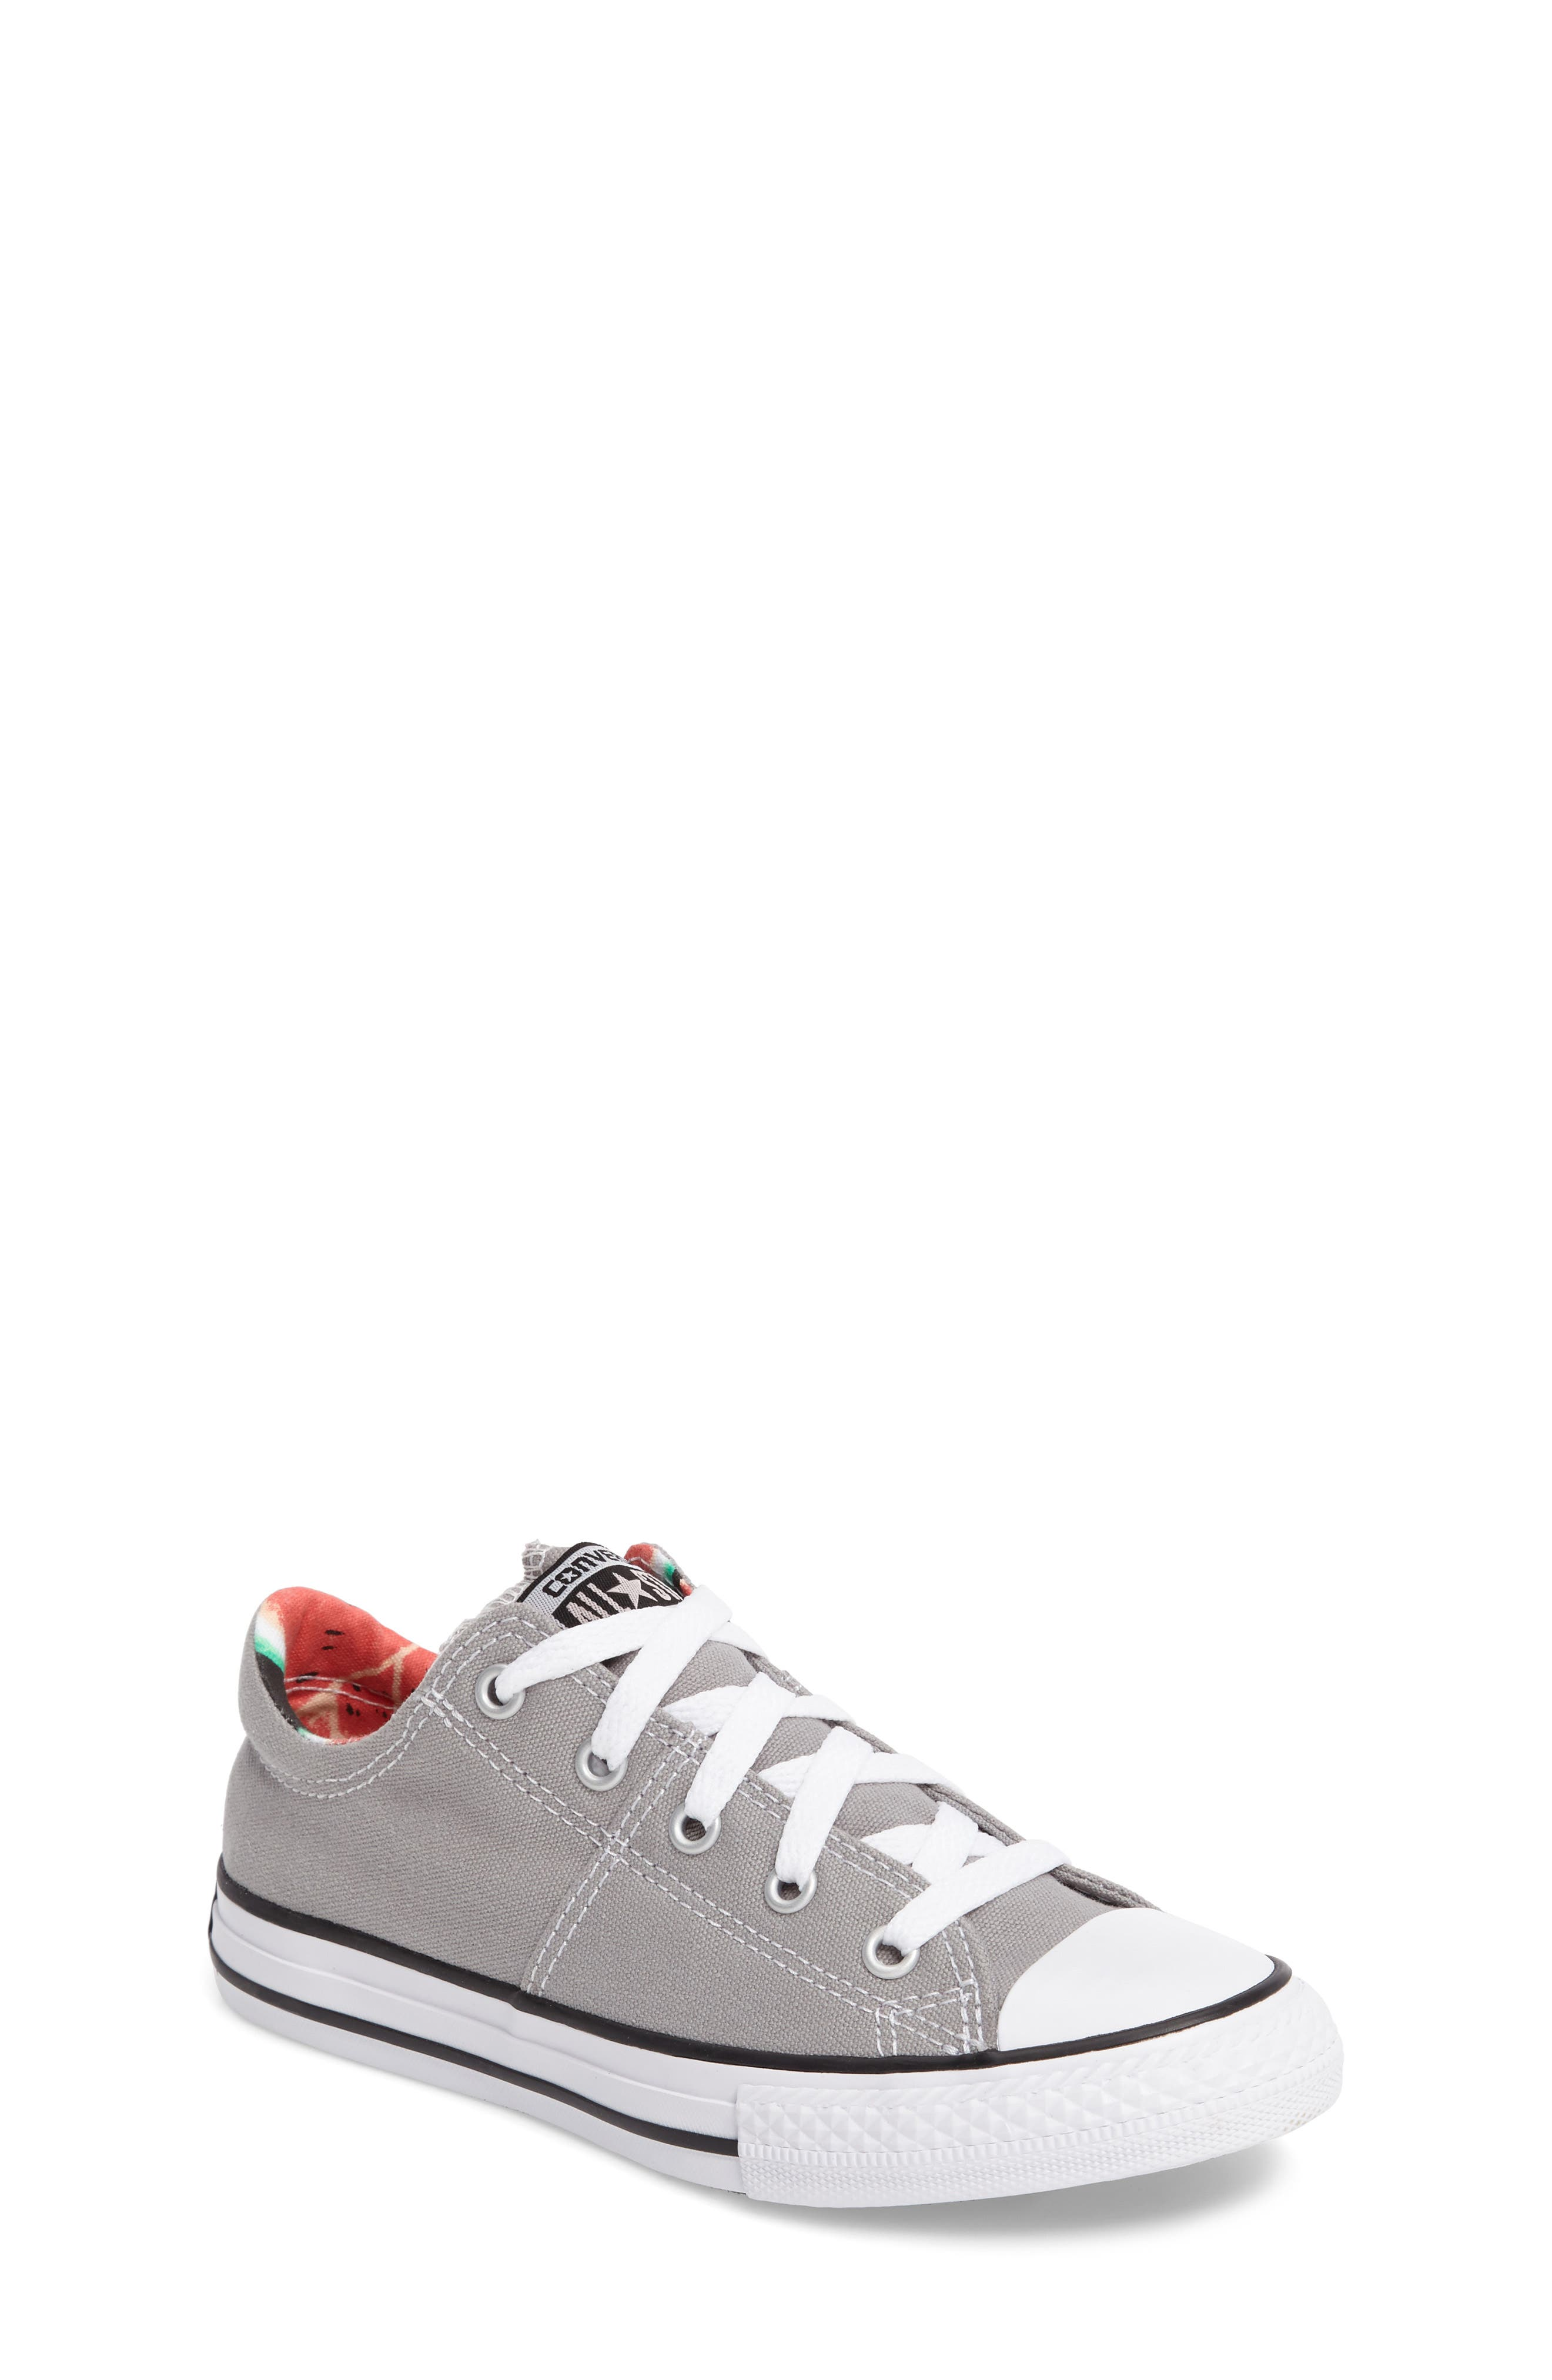 Chuck Taylor<sup>®</sup> All Star<sup>®</sup> Madison Low Top Sneaker,                             Main thumbnail 4, color,